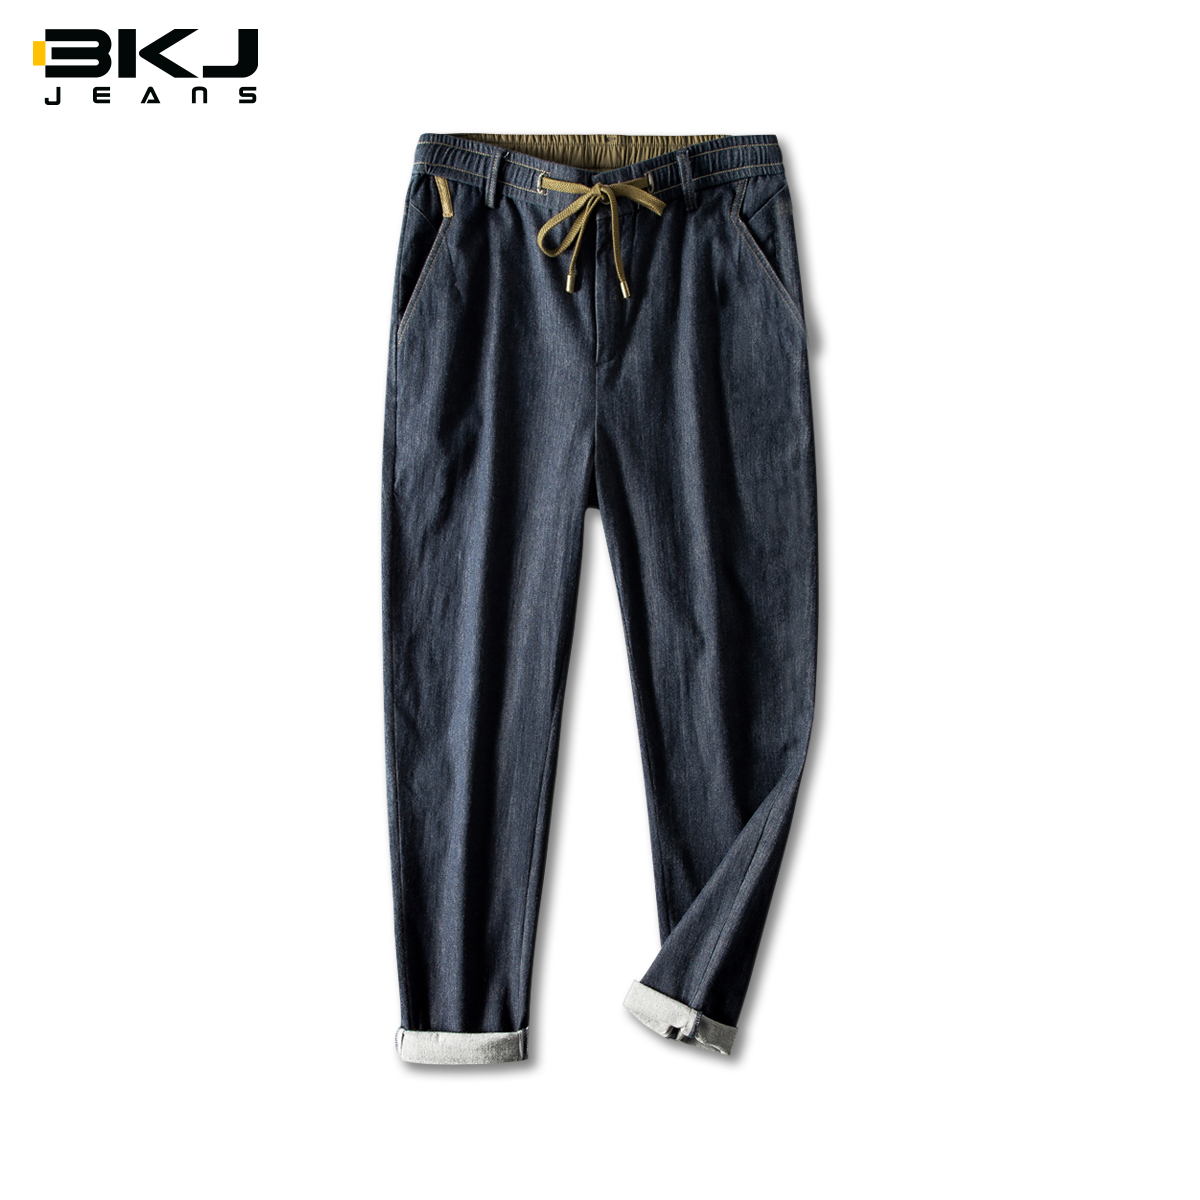 BK summer men's Linen casual jeans straight tube baggy men's pants spring summer thin summer ultra thin 9-point pants